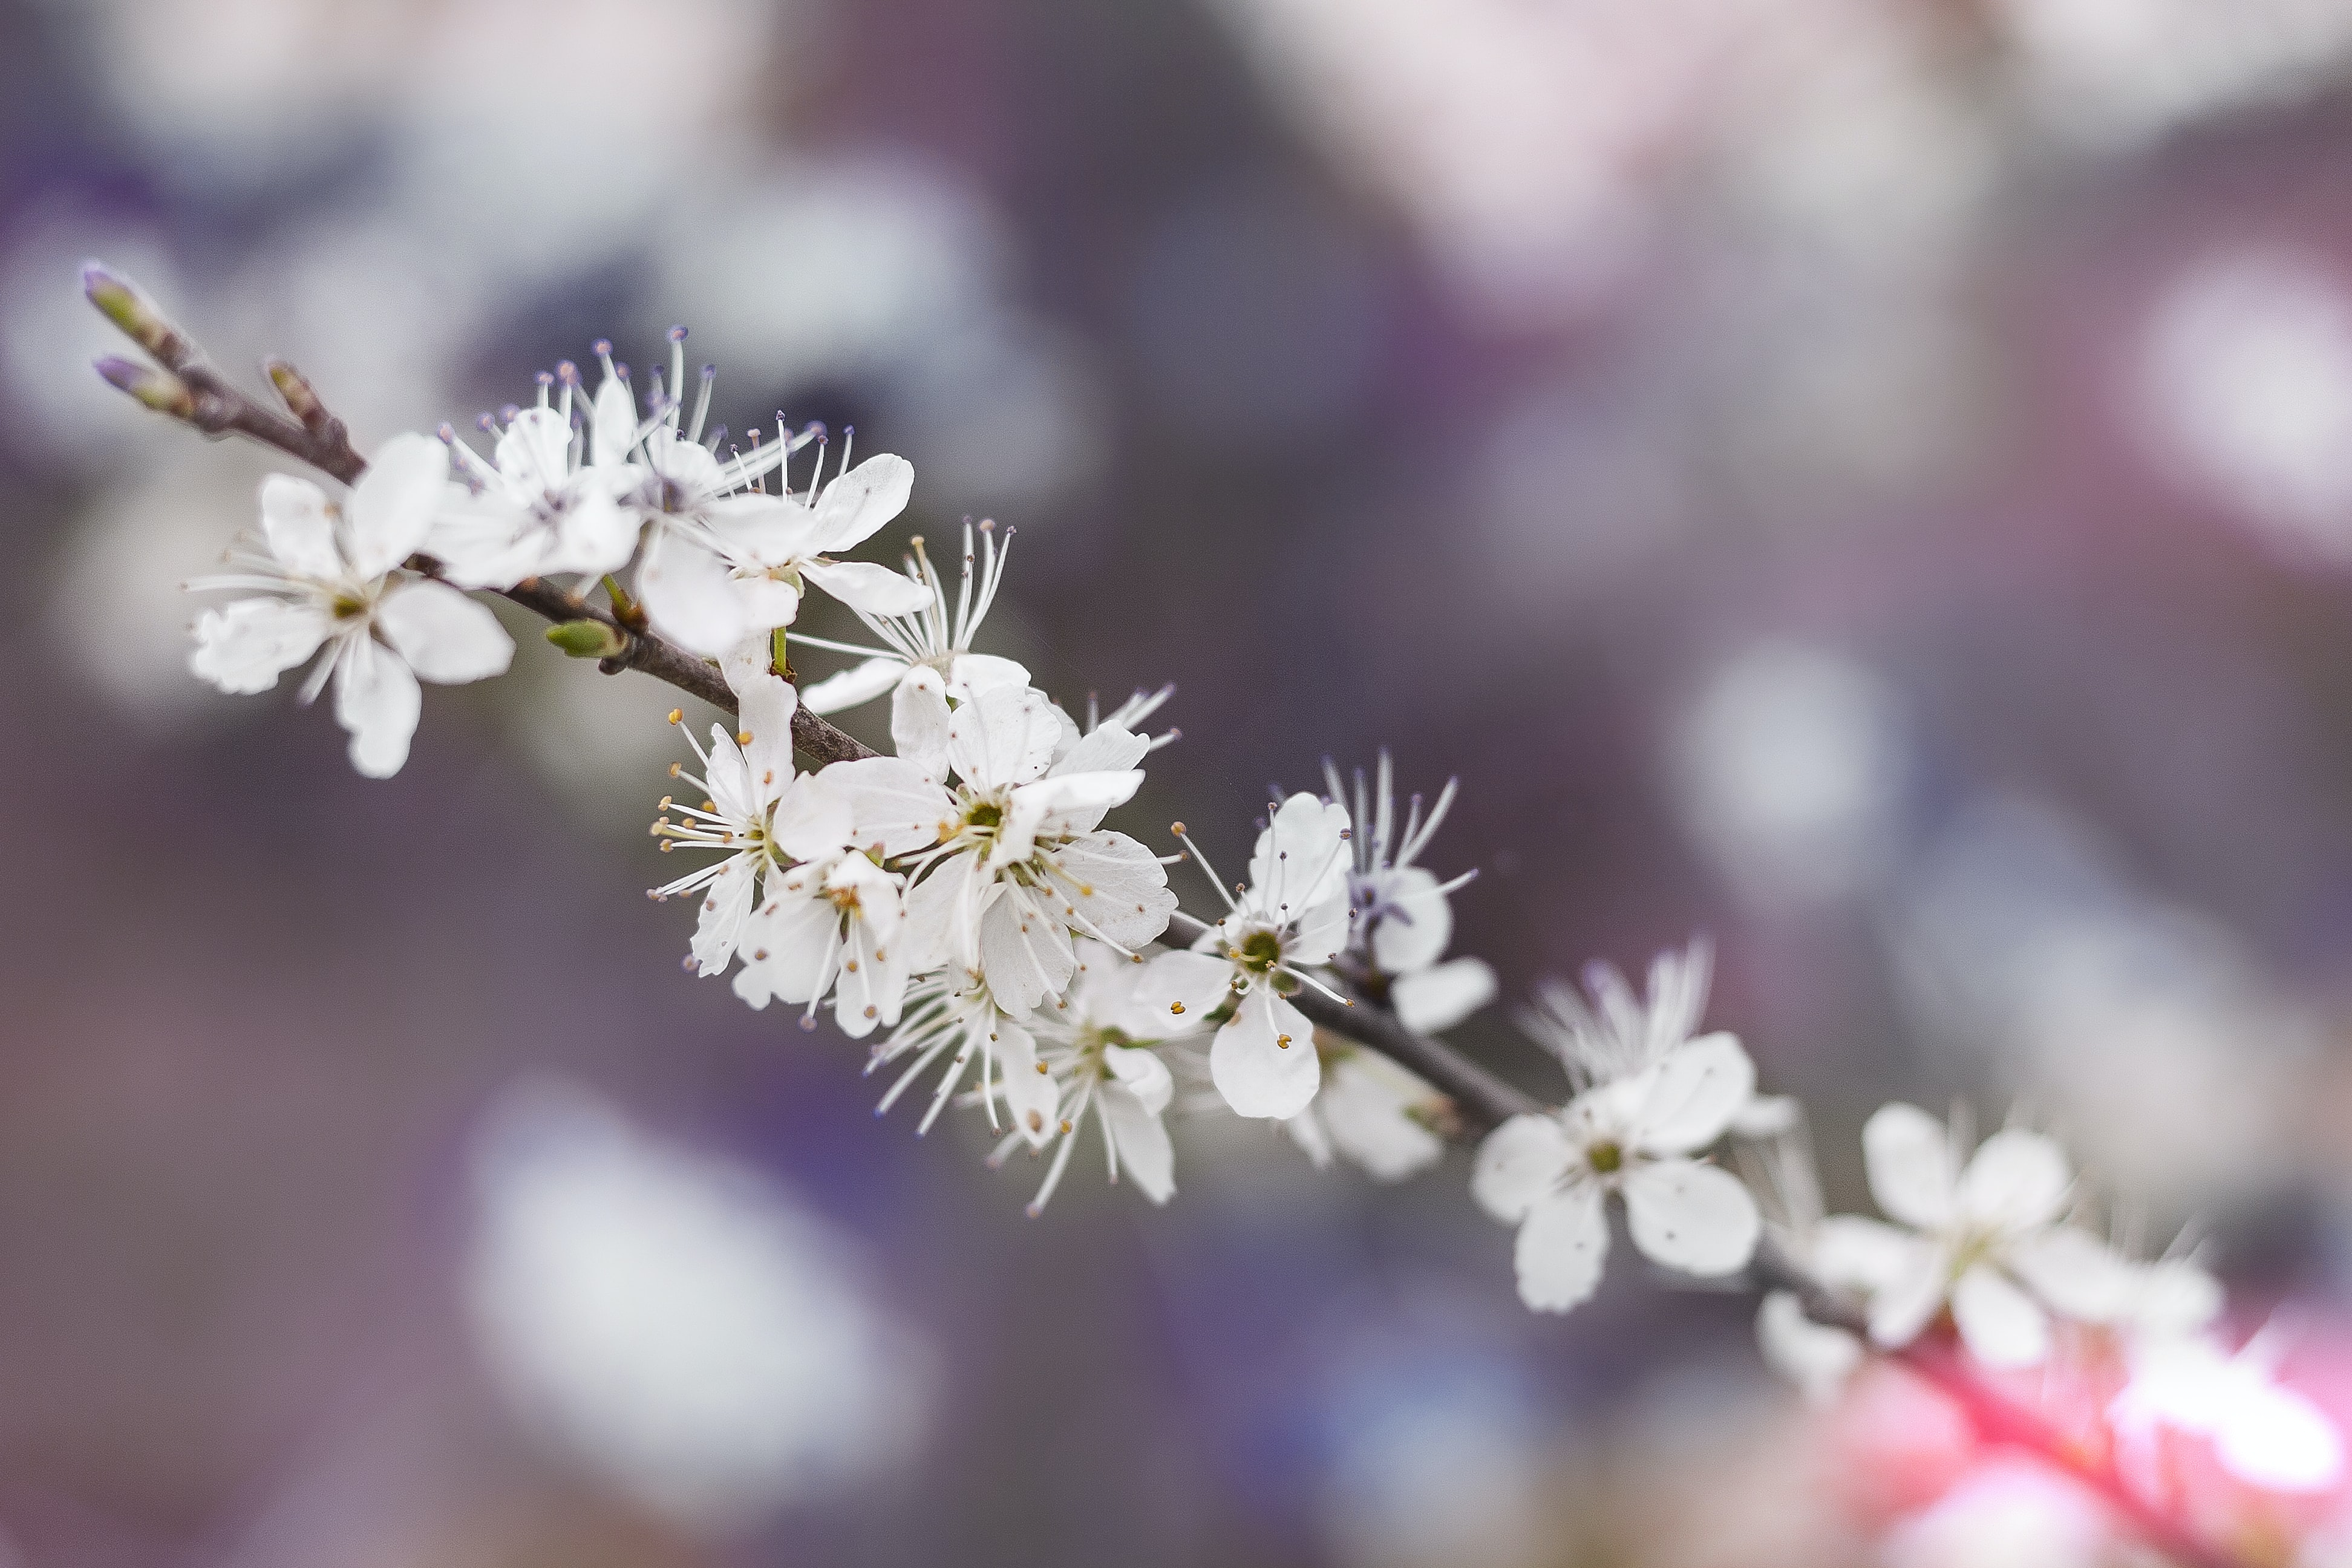 White flowery blossom on branch with petals in Spring